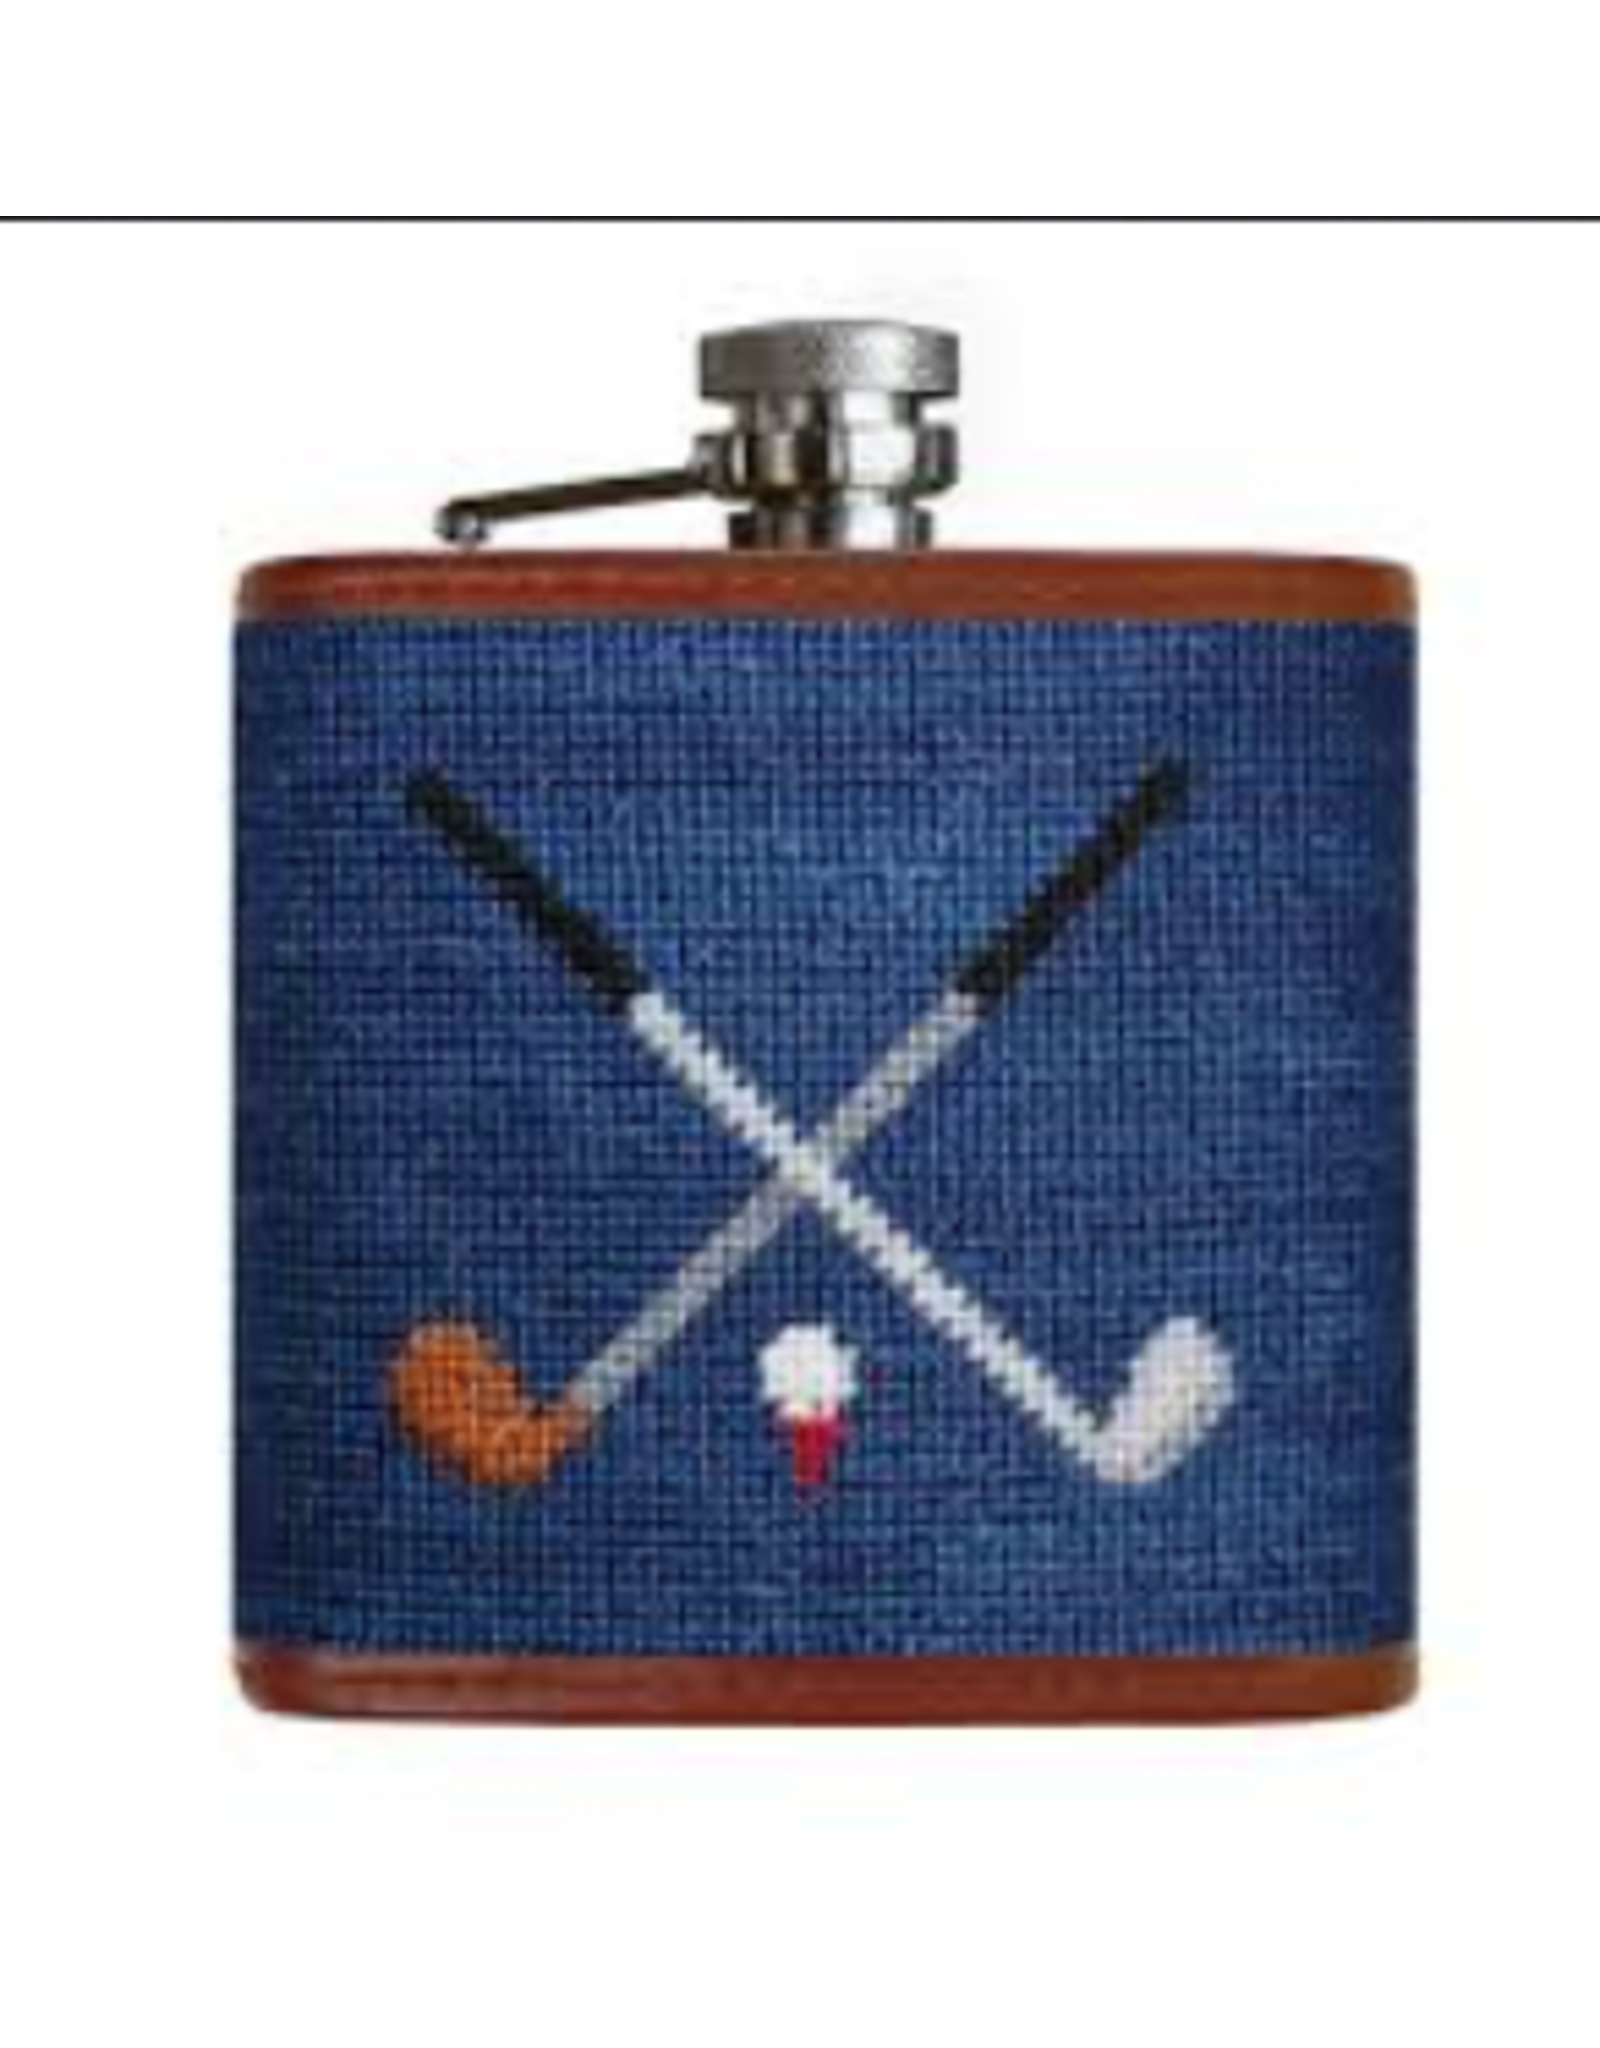 Smathers & Branson S&B Flask, Crossed Clubs